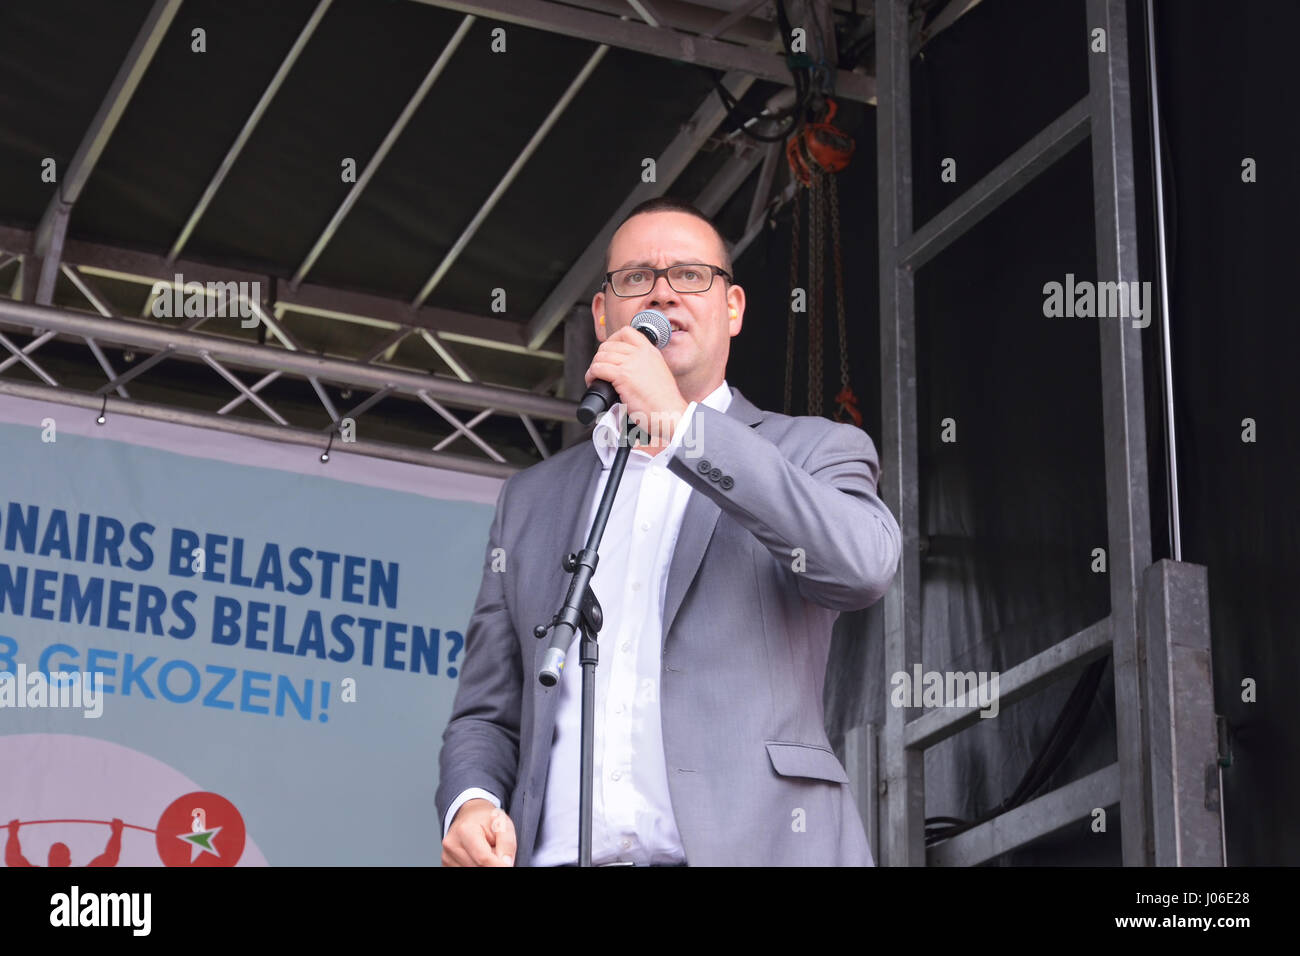 Spokesman of the Labor Party of Belgium Raoul Hedebouw speaks during National Manifestation in Brussels, Belgium, - Stock Image